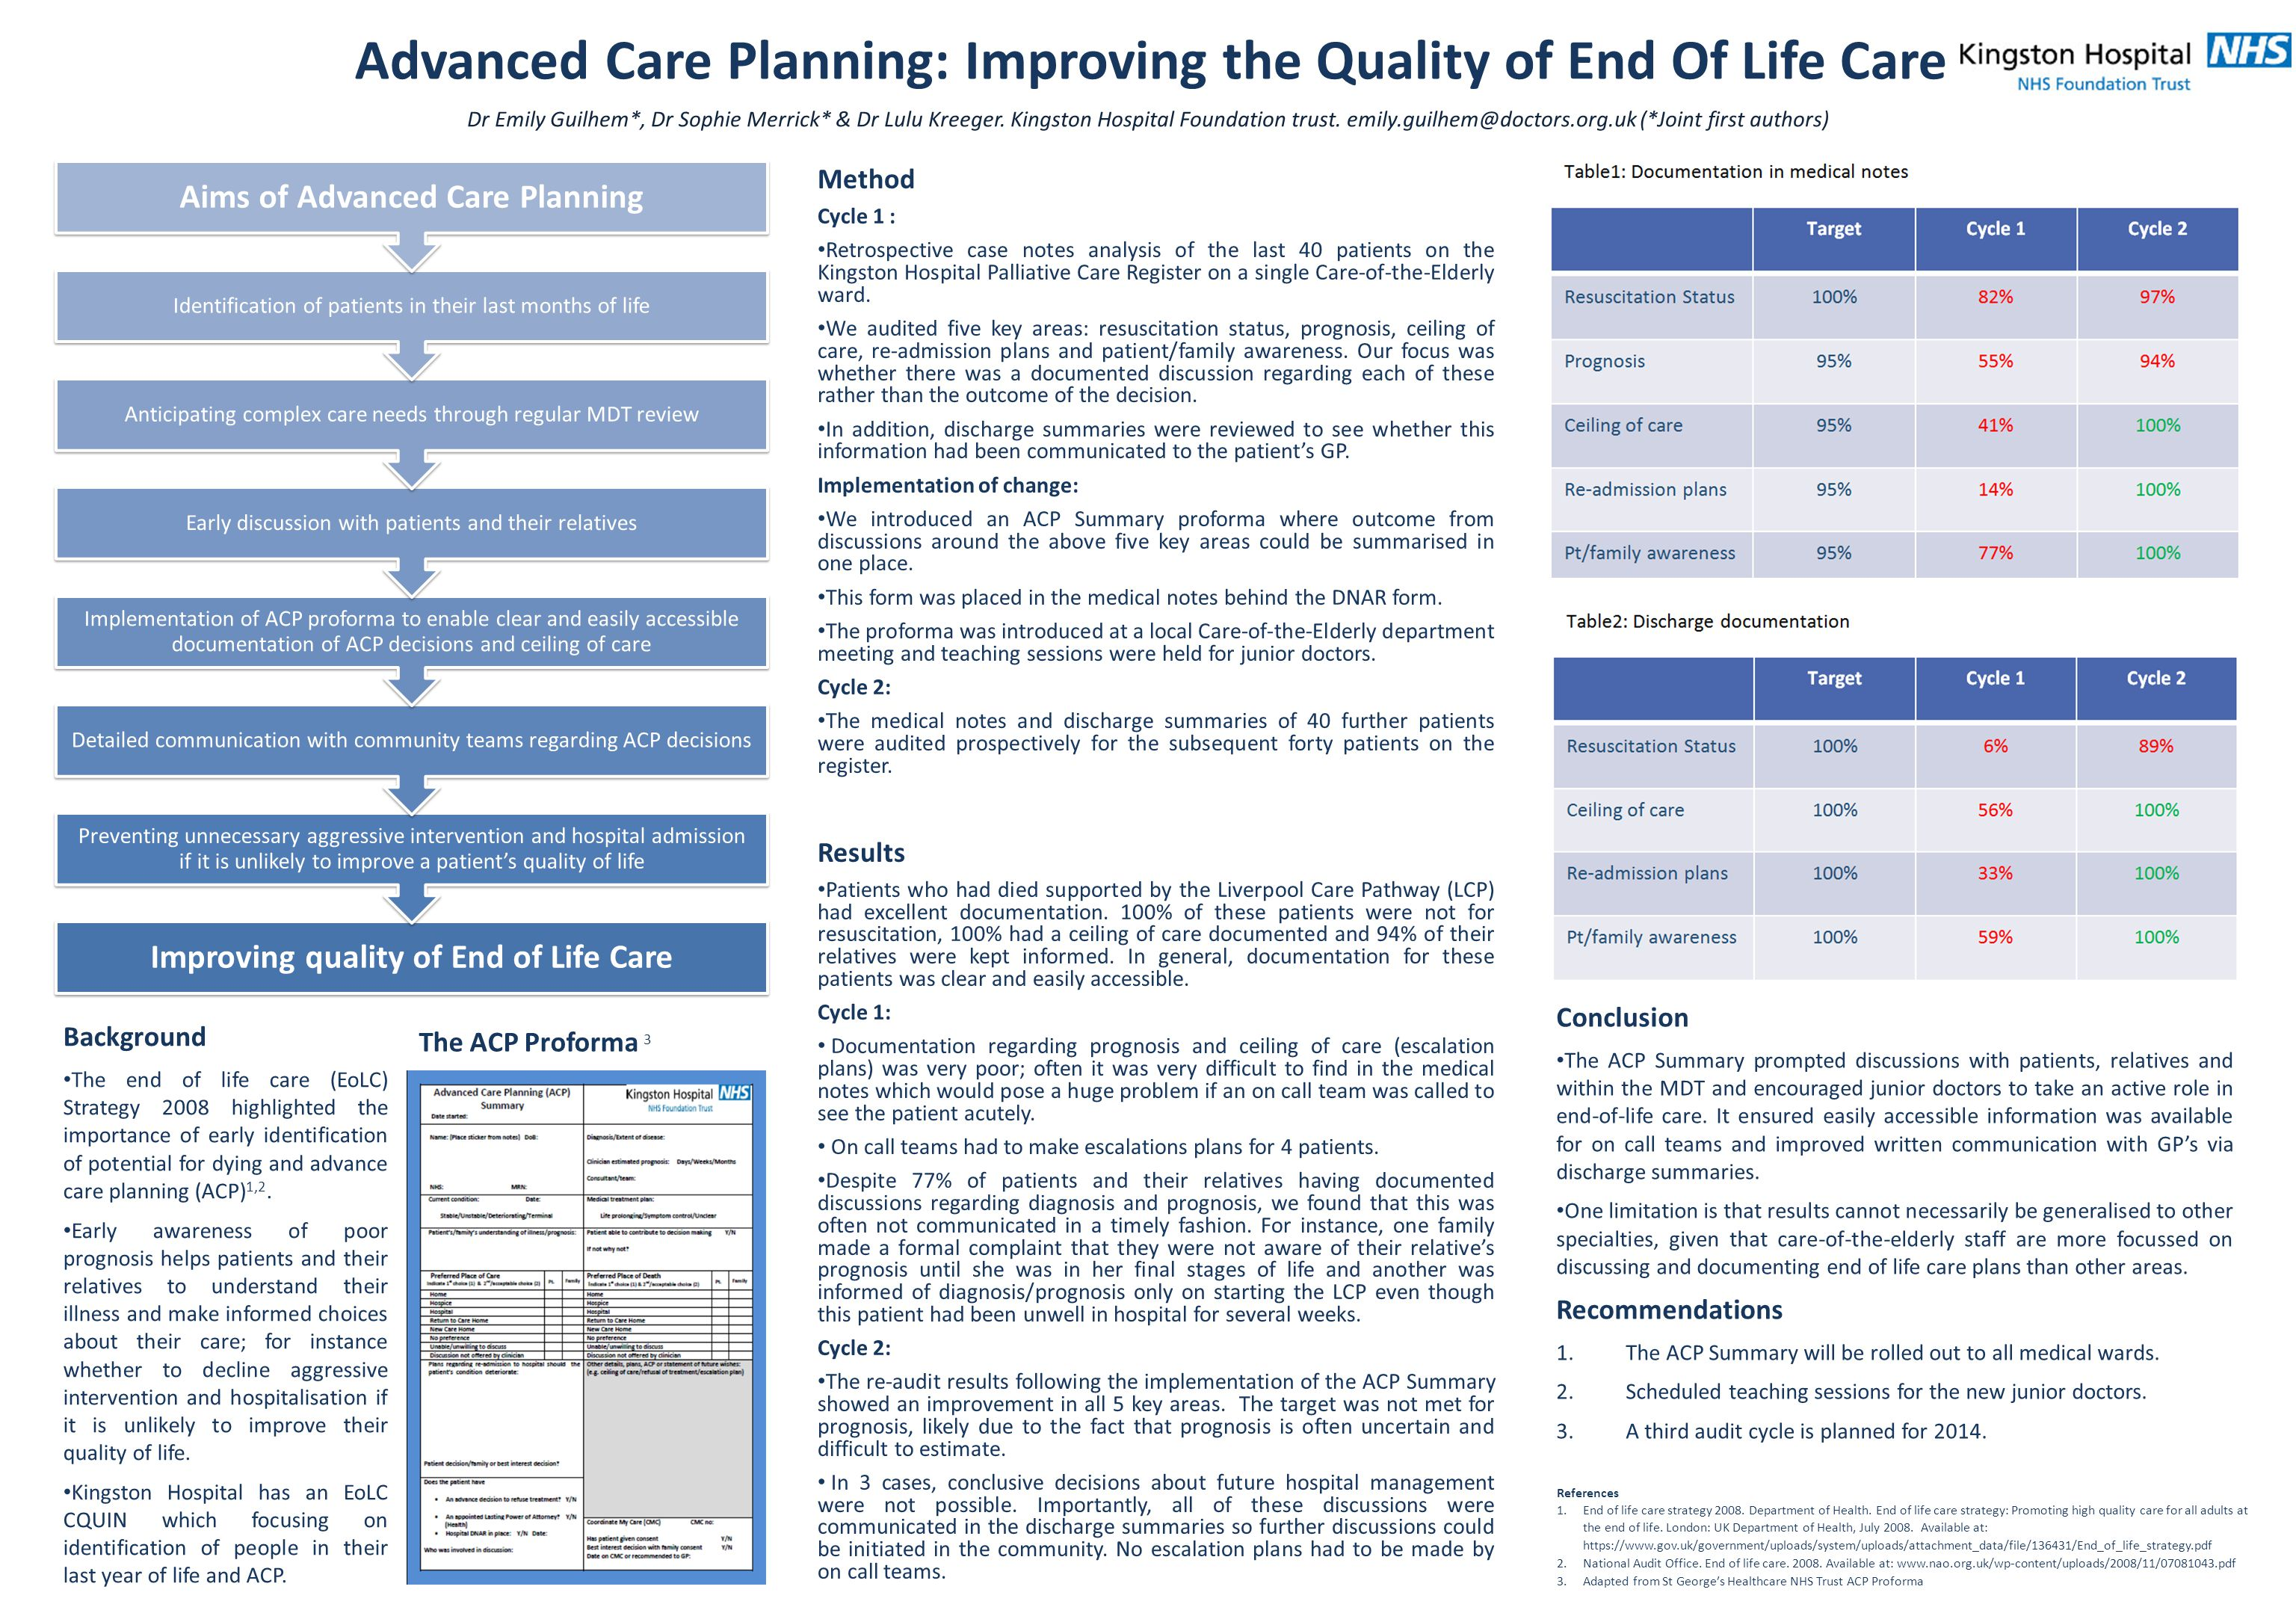 Method Cycle 1 : Retrospective case notes analysis of the last 40 patients on the Kingston Hospital Palliative Care Register on a single Care-of-the-Elderly ward.